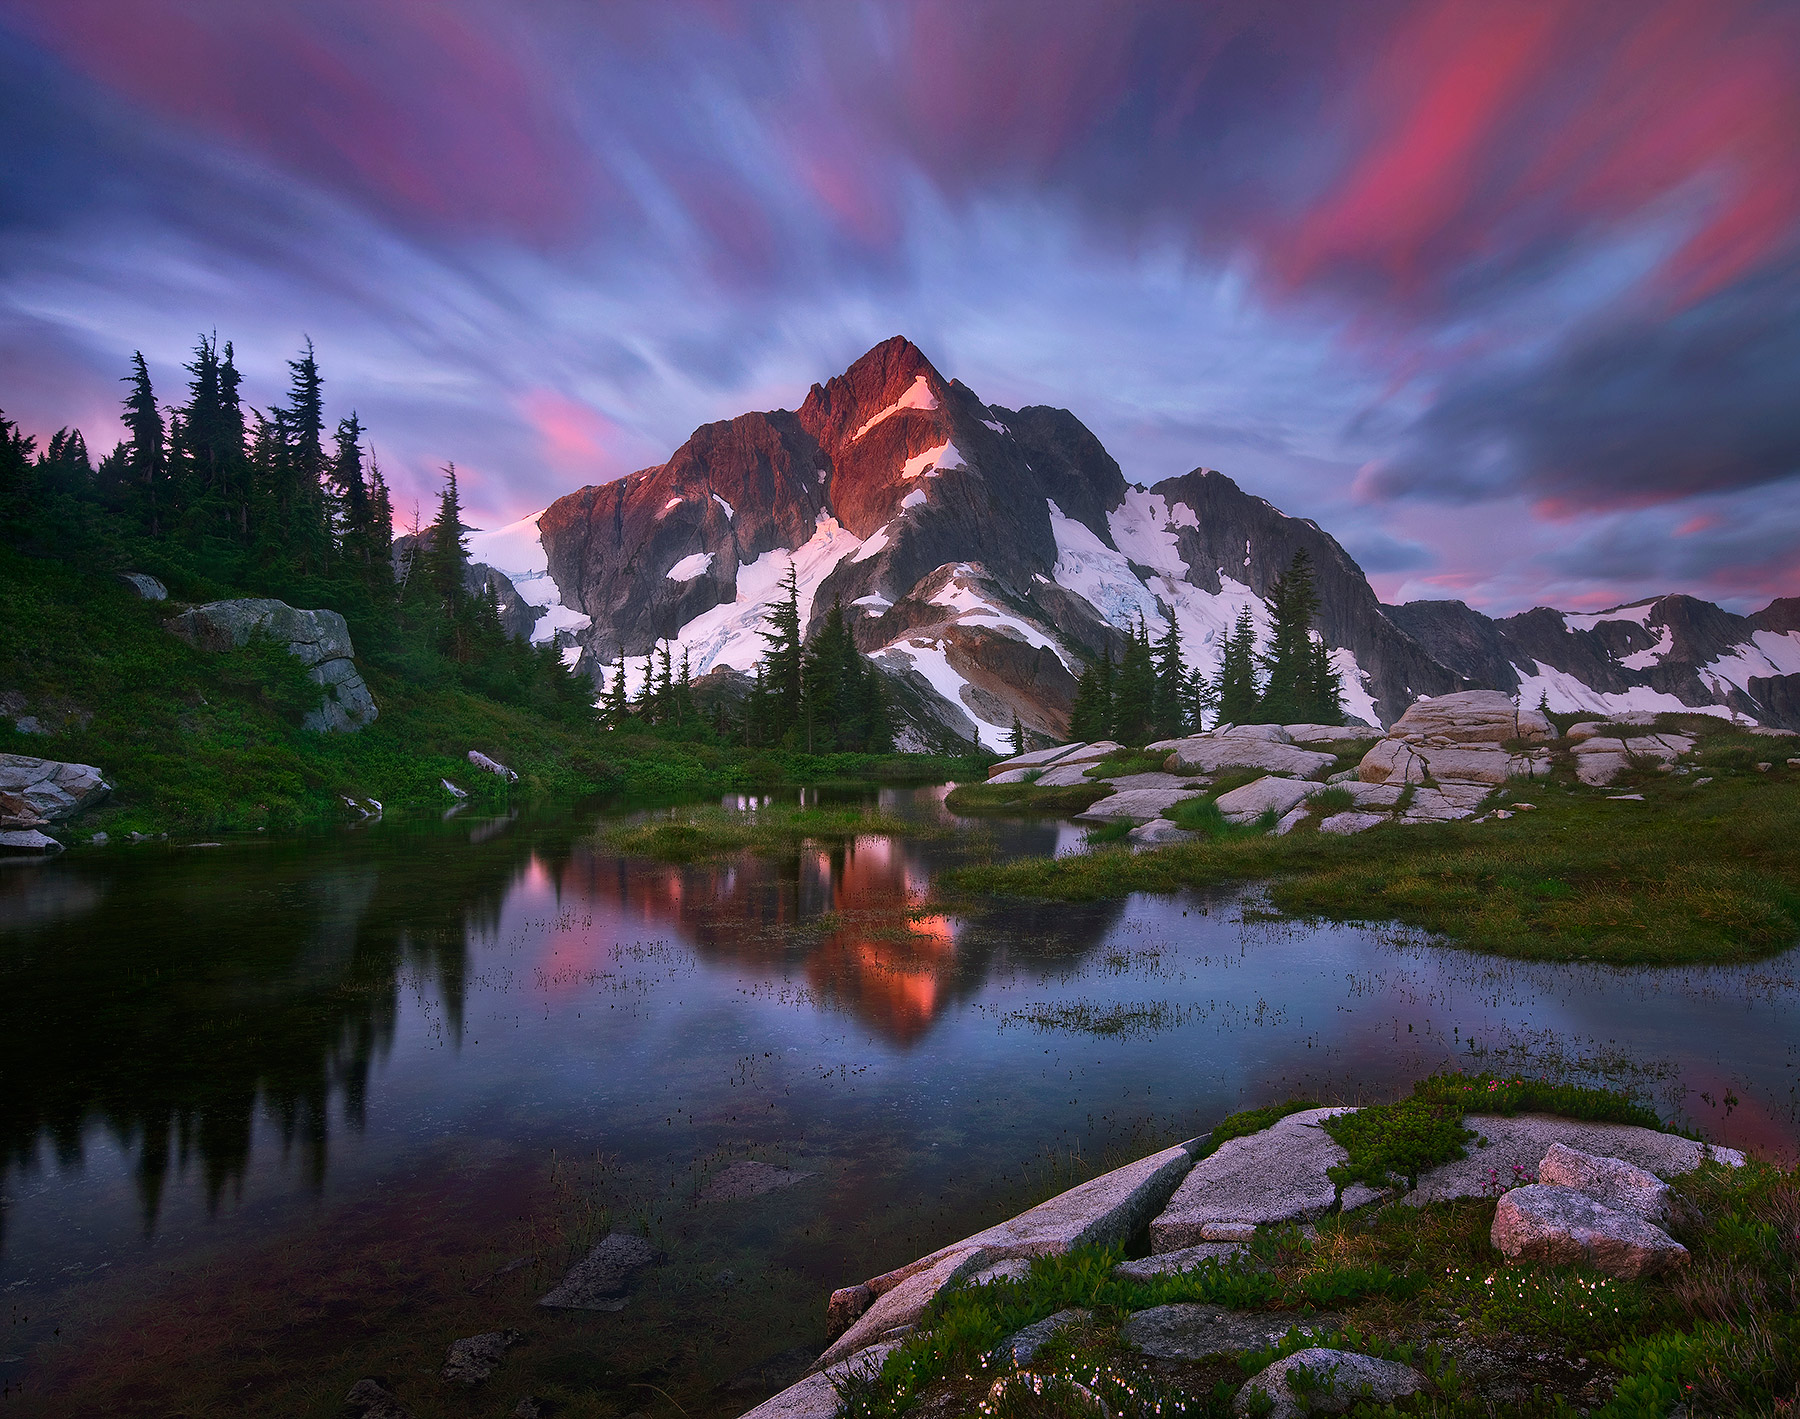 Long exposure, clouds, whatcom peak, peak, whatcom, north cascades, washington, tarn, remote, photo